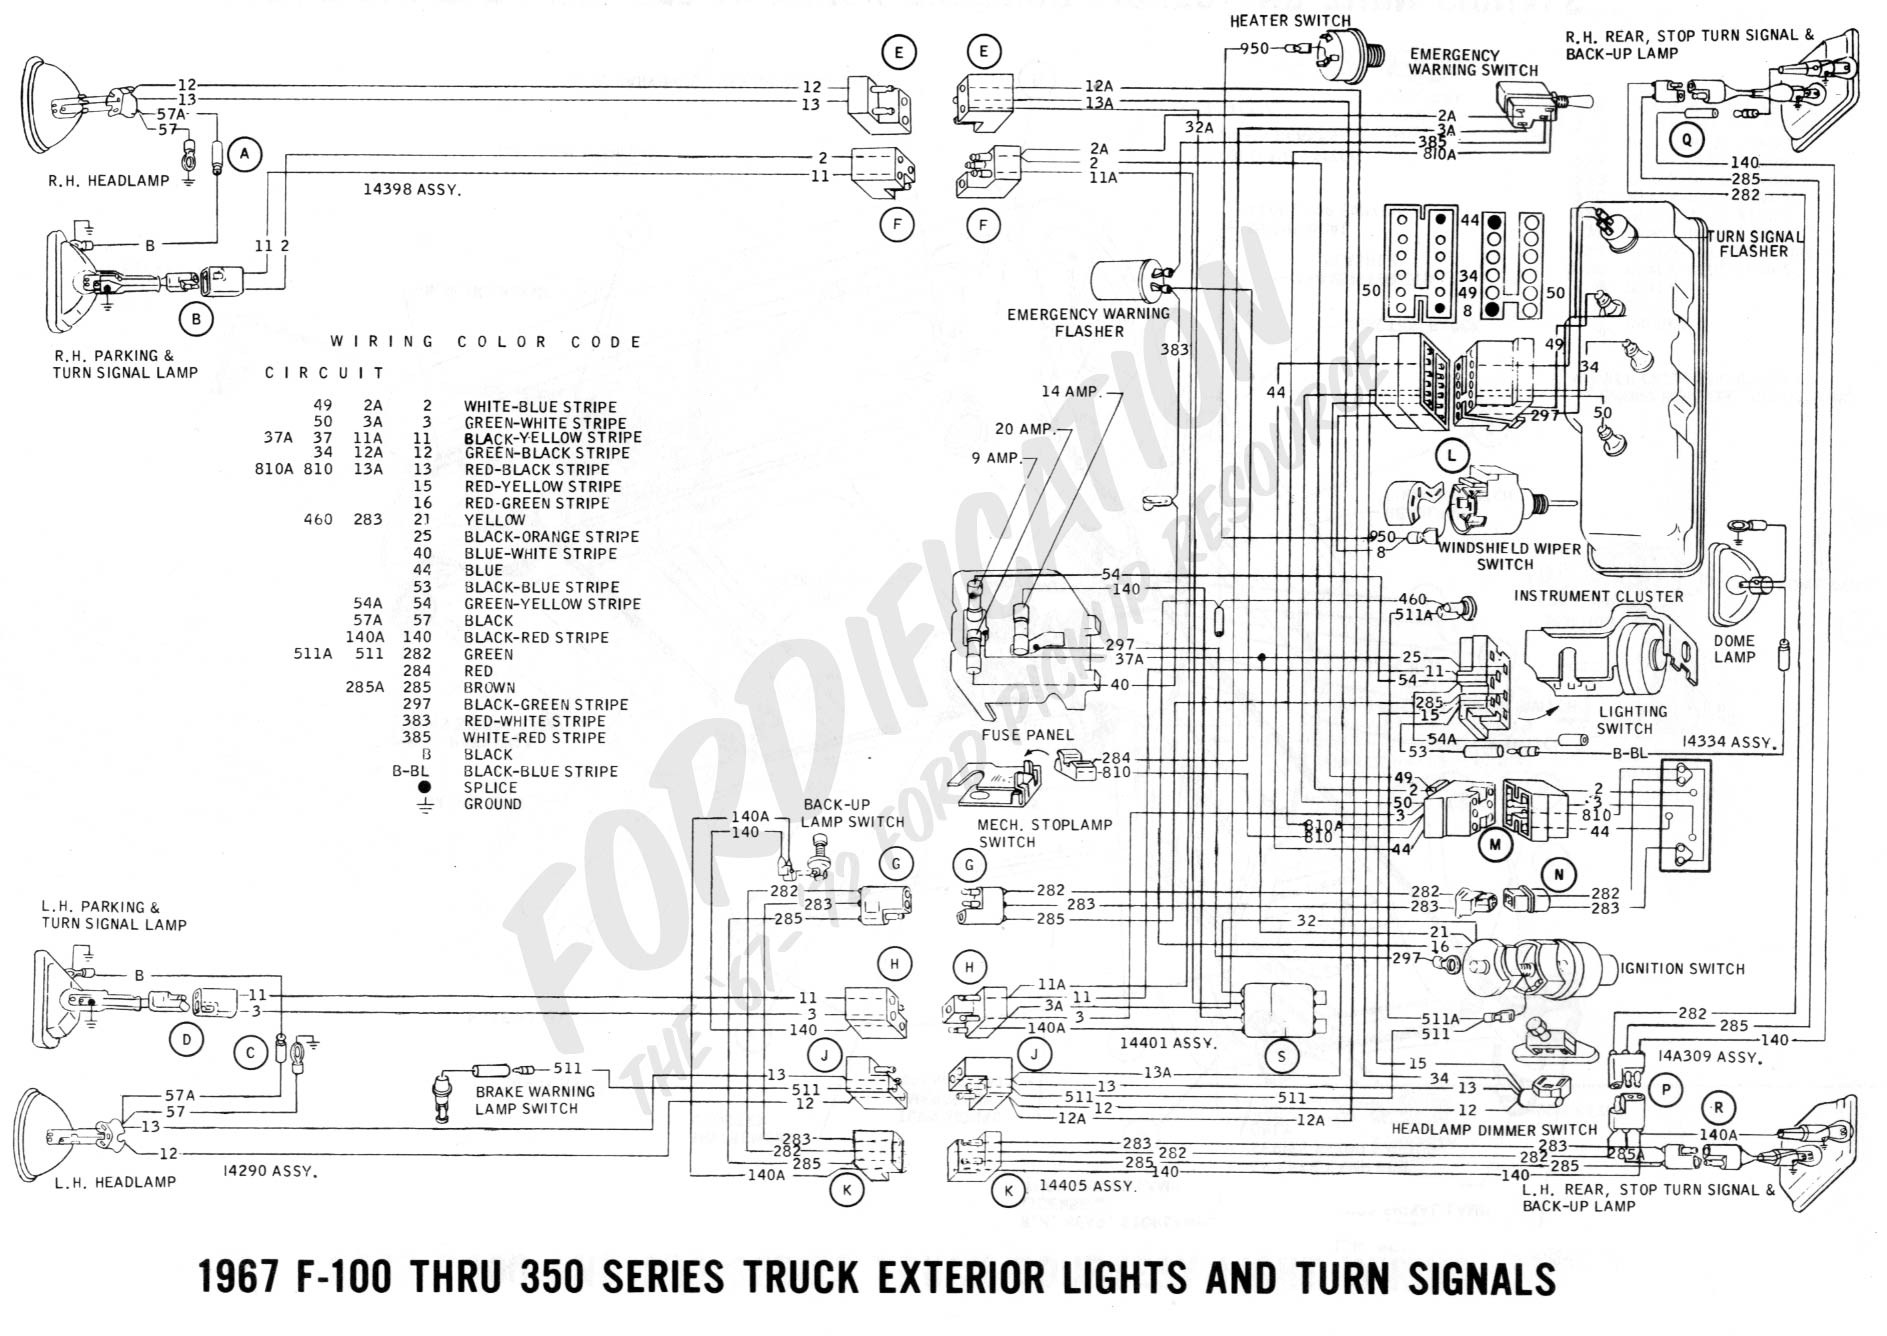 2003 Ford Mustang Engine Diagram Amusing F350 Wiring 41 For Your 30 Amp Rv